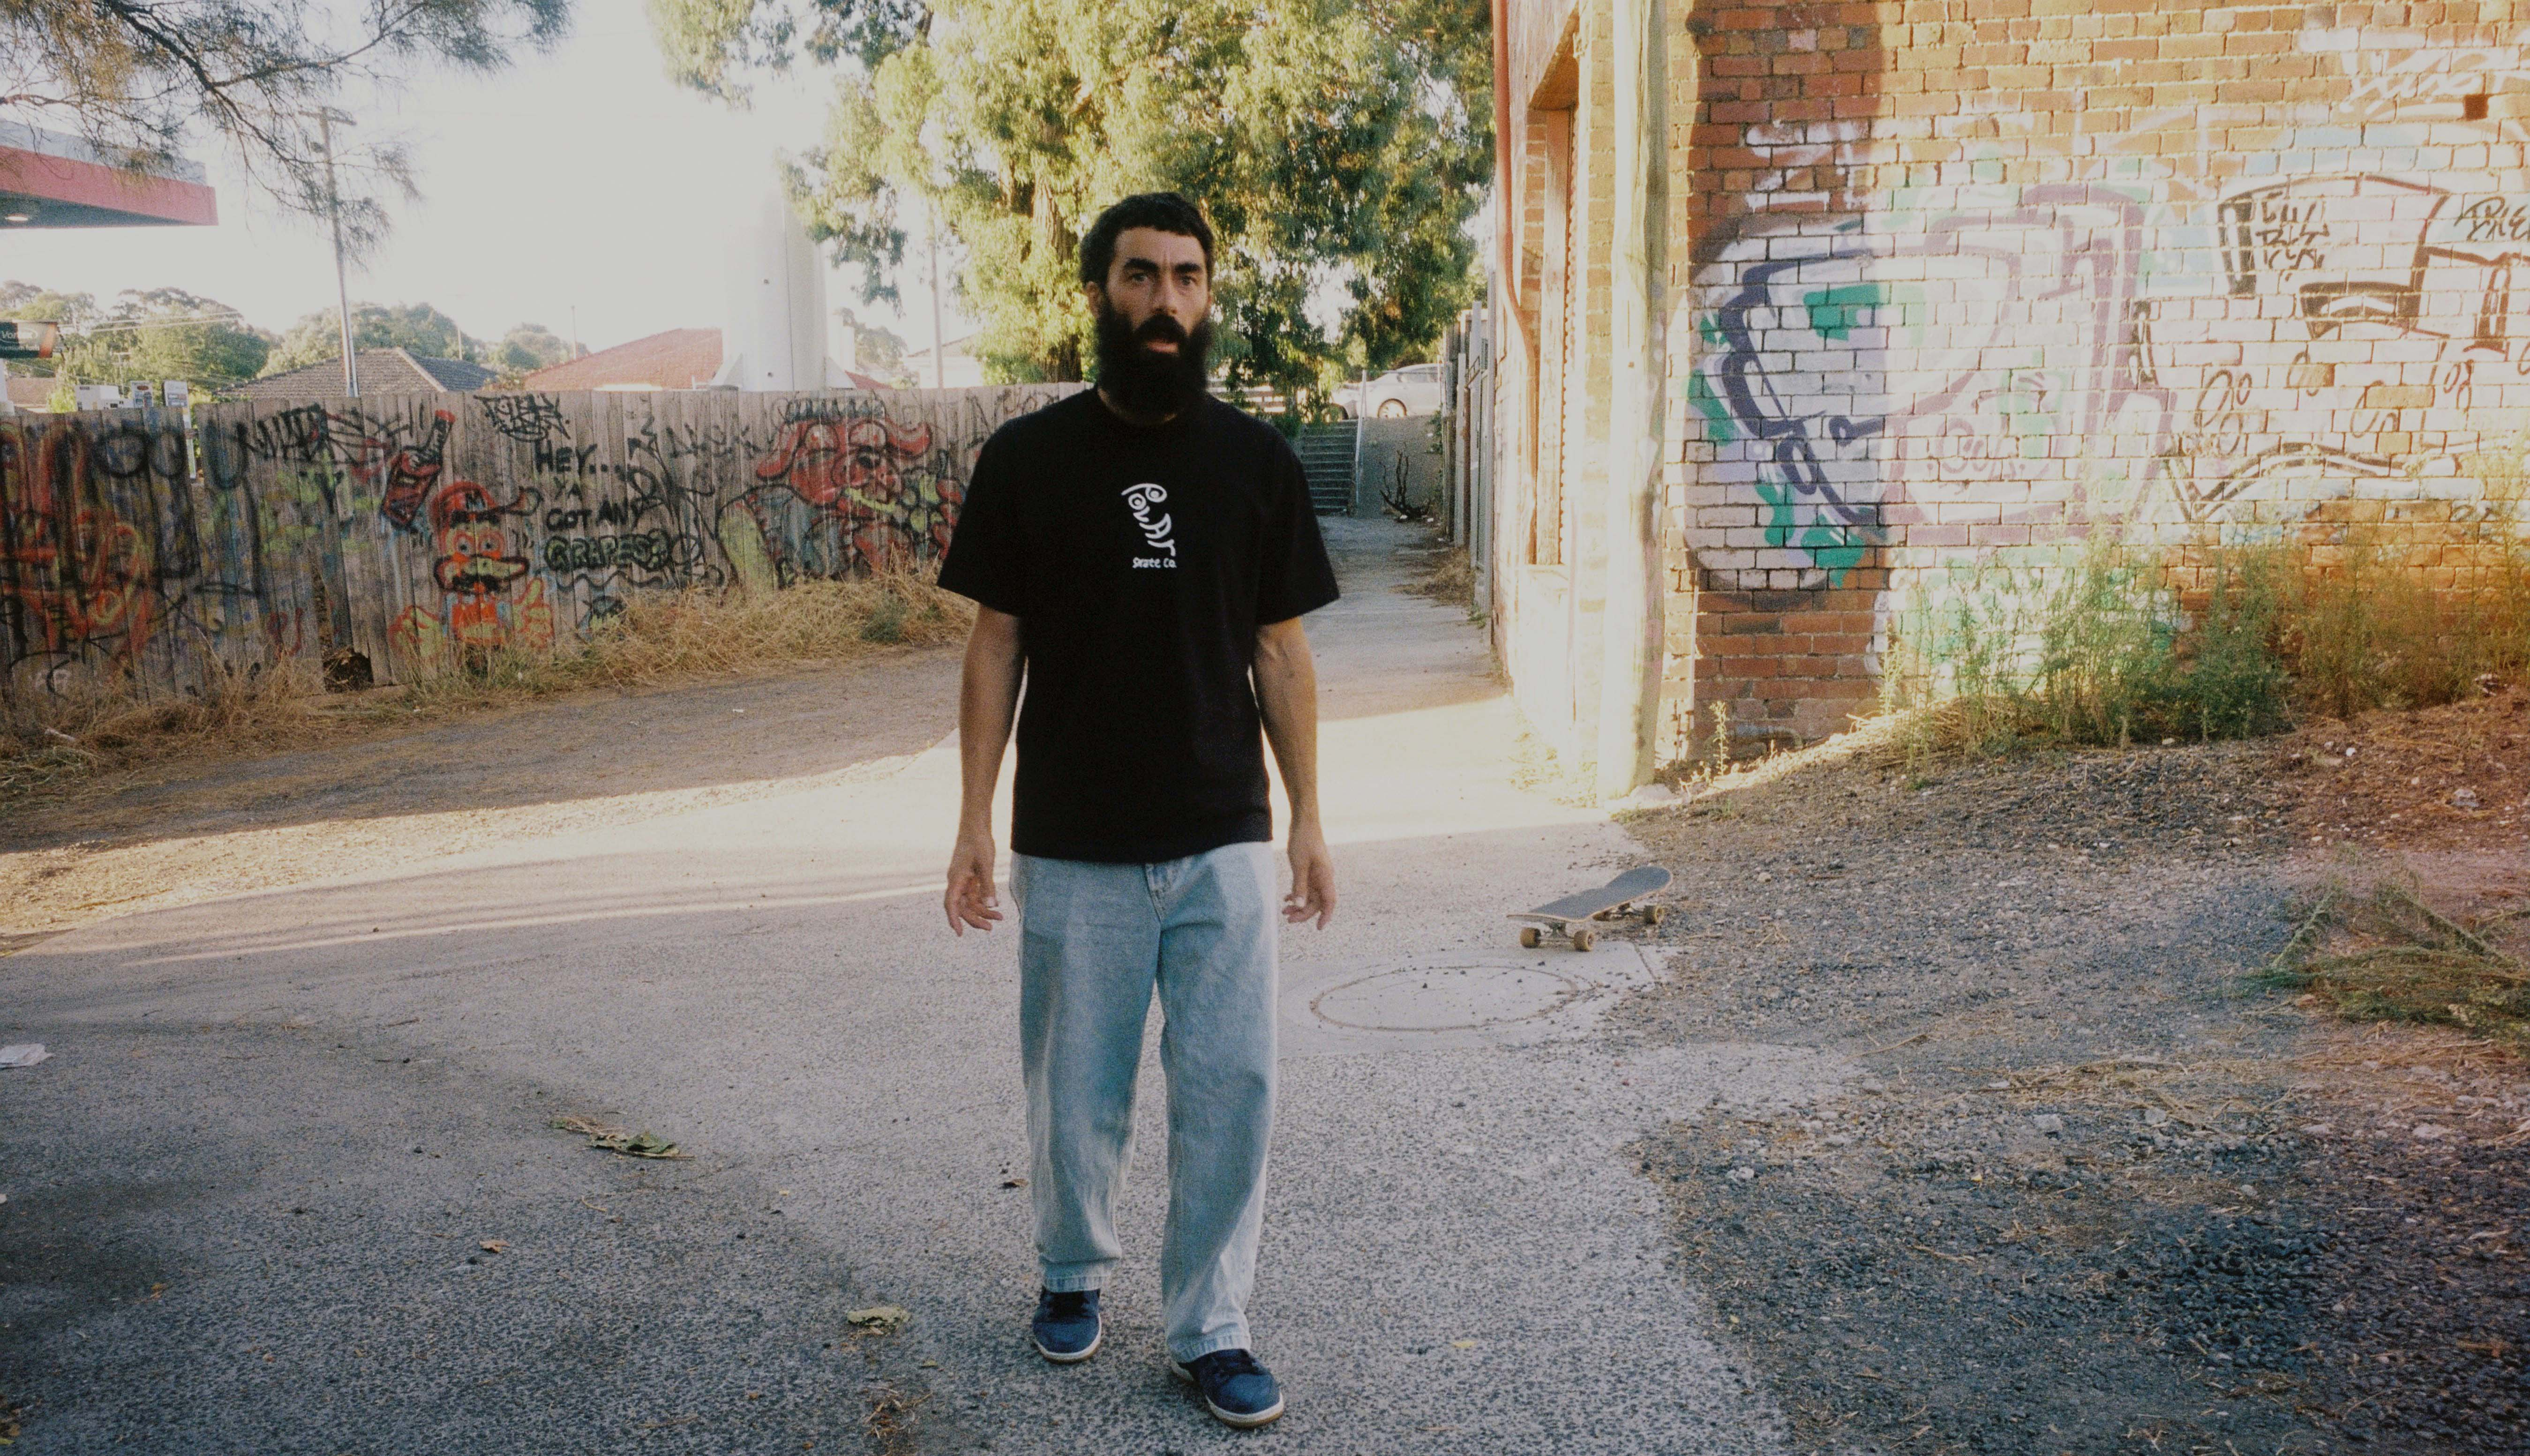 VANS X INDEPENDENT TRUCK CO SHOES & CLOTHING - Skate Shoes, Hoodies, Hats and more.